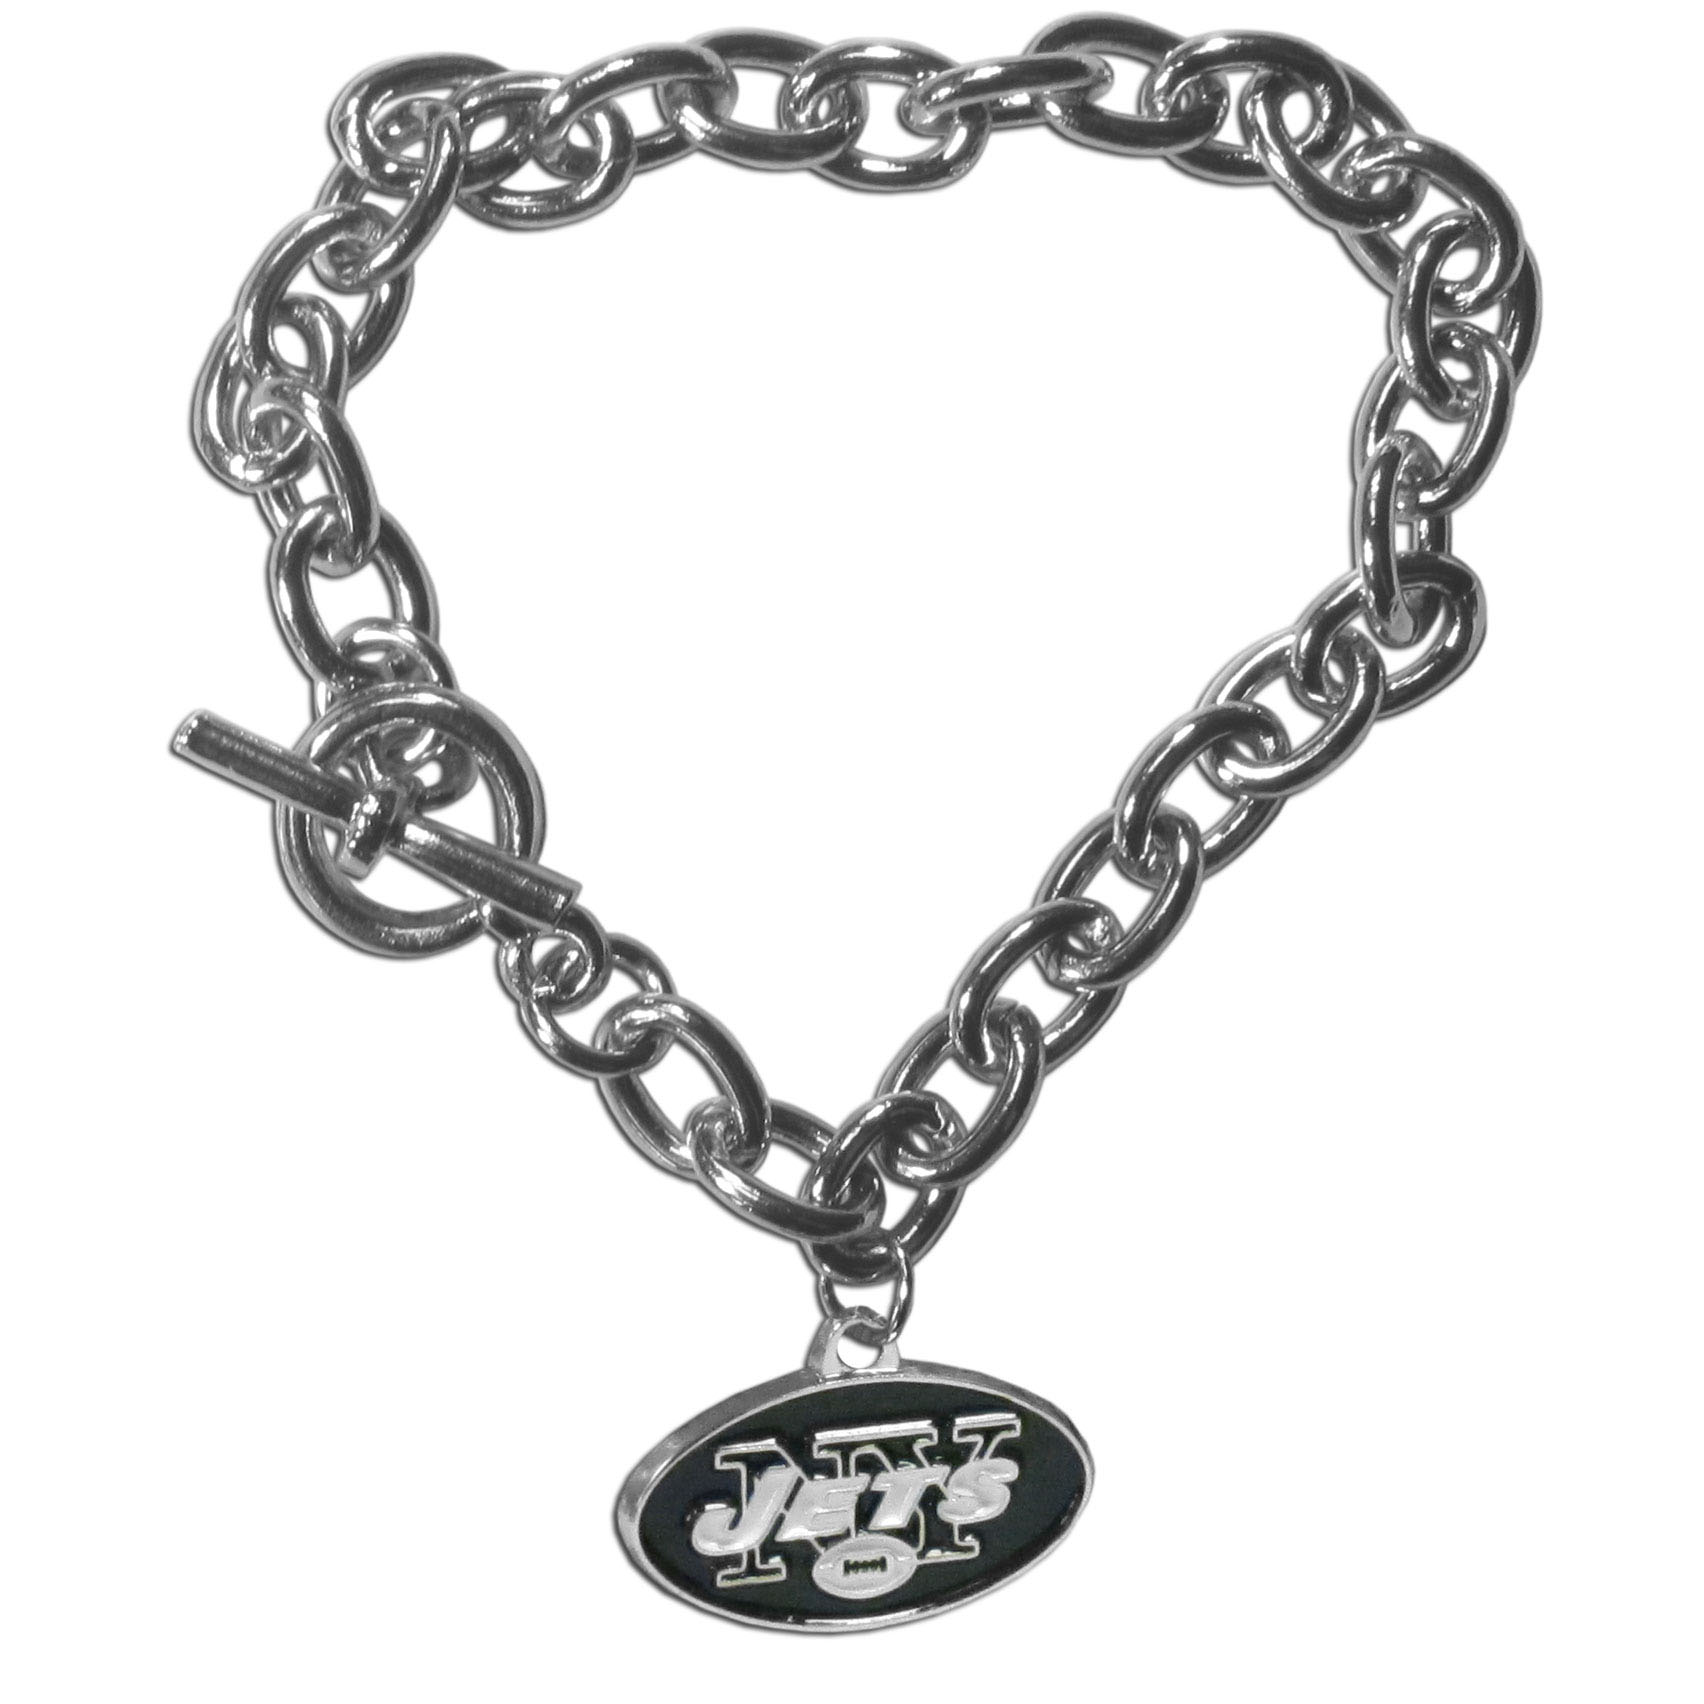 New York Jets Charm Chain Bracelet - Our classic single charm bracelet is a great way to show off your team pride! The 7.5 inch large link chain features a high polish New York Jets charm and features a toggle clasp which makes it super easy to take on and off.